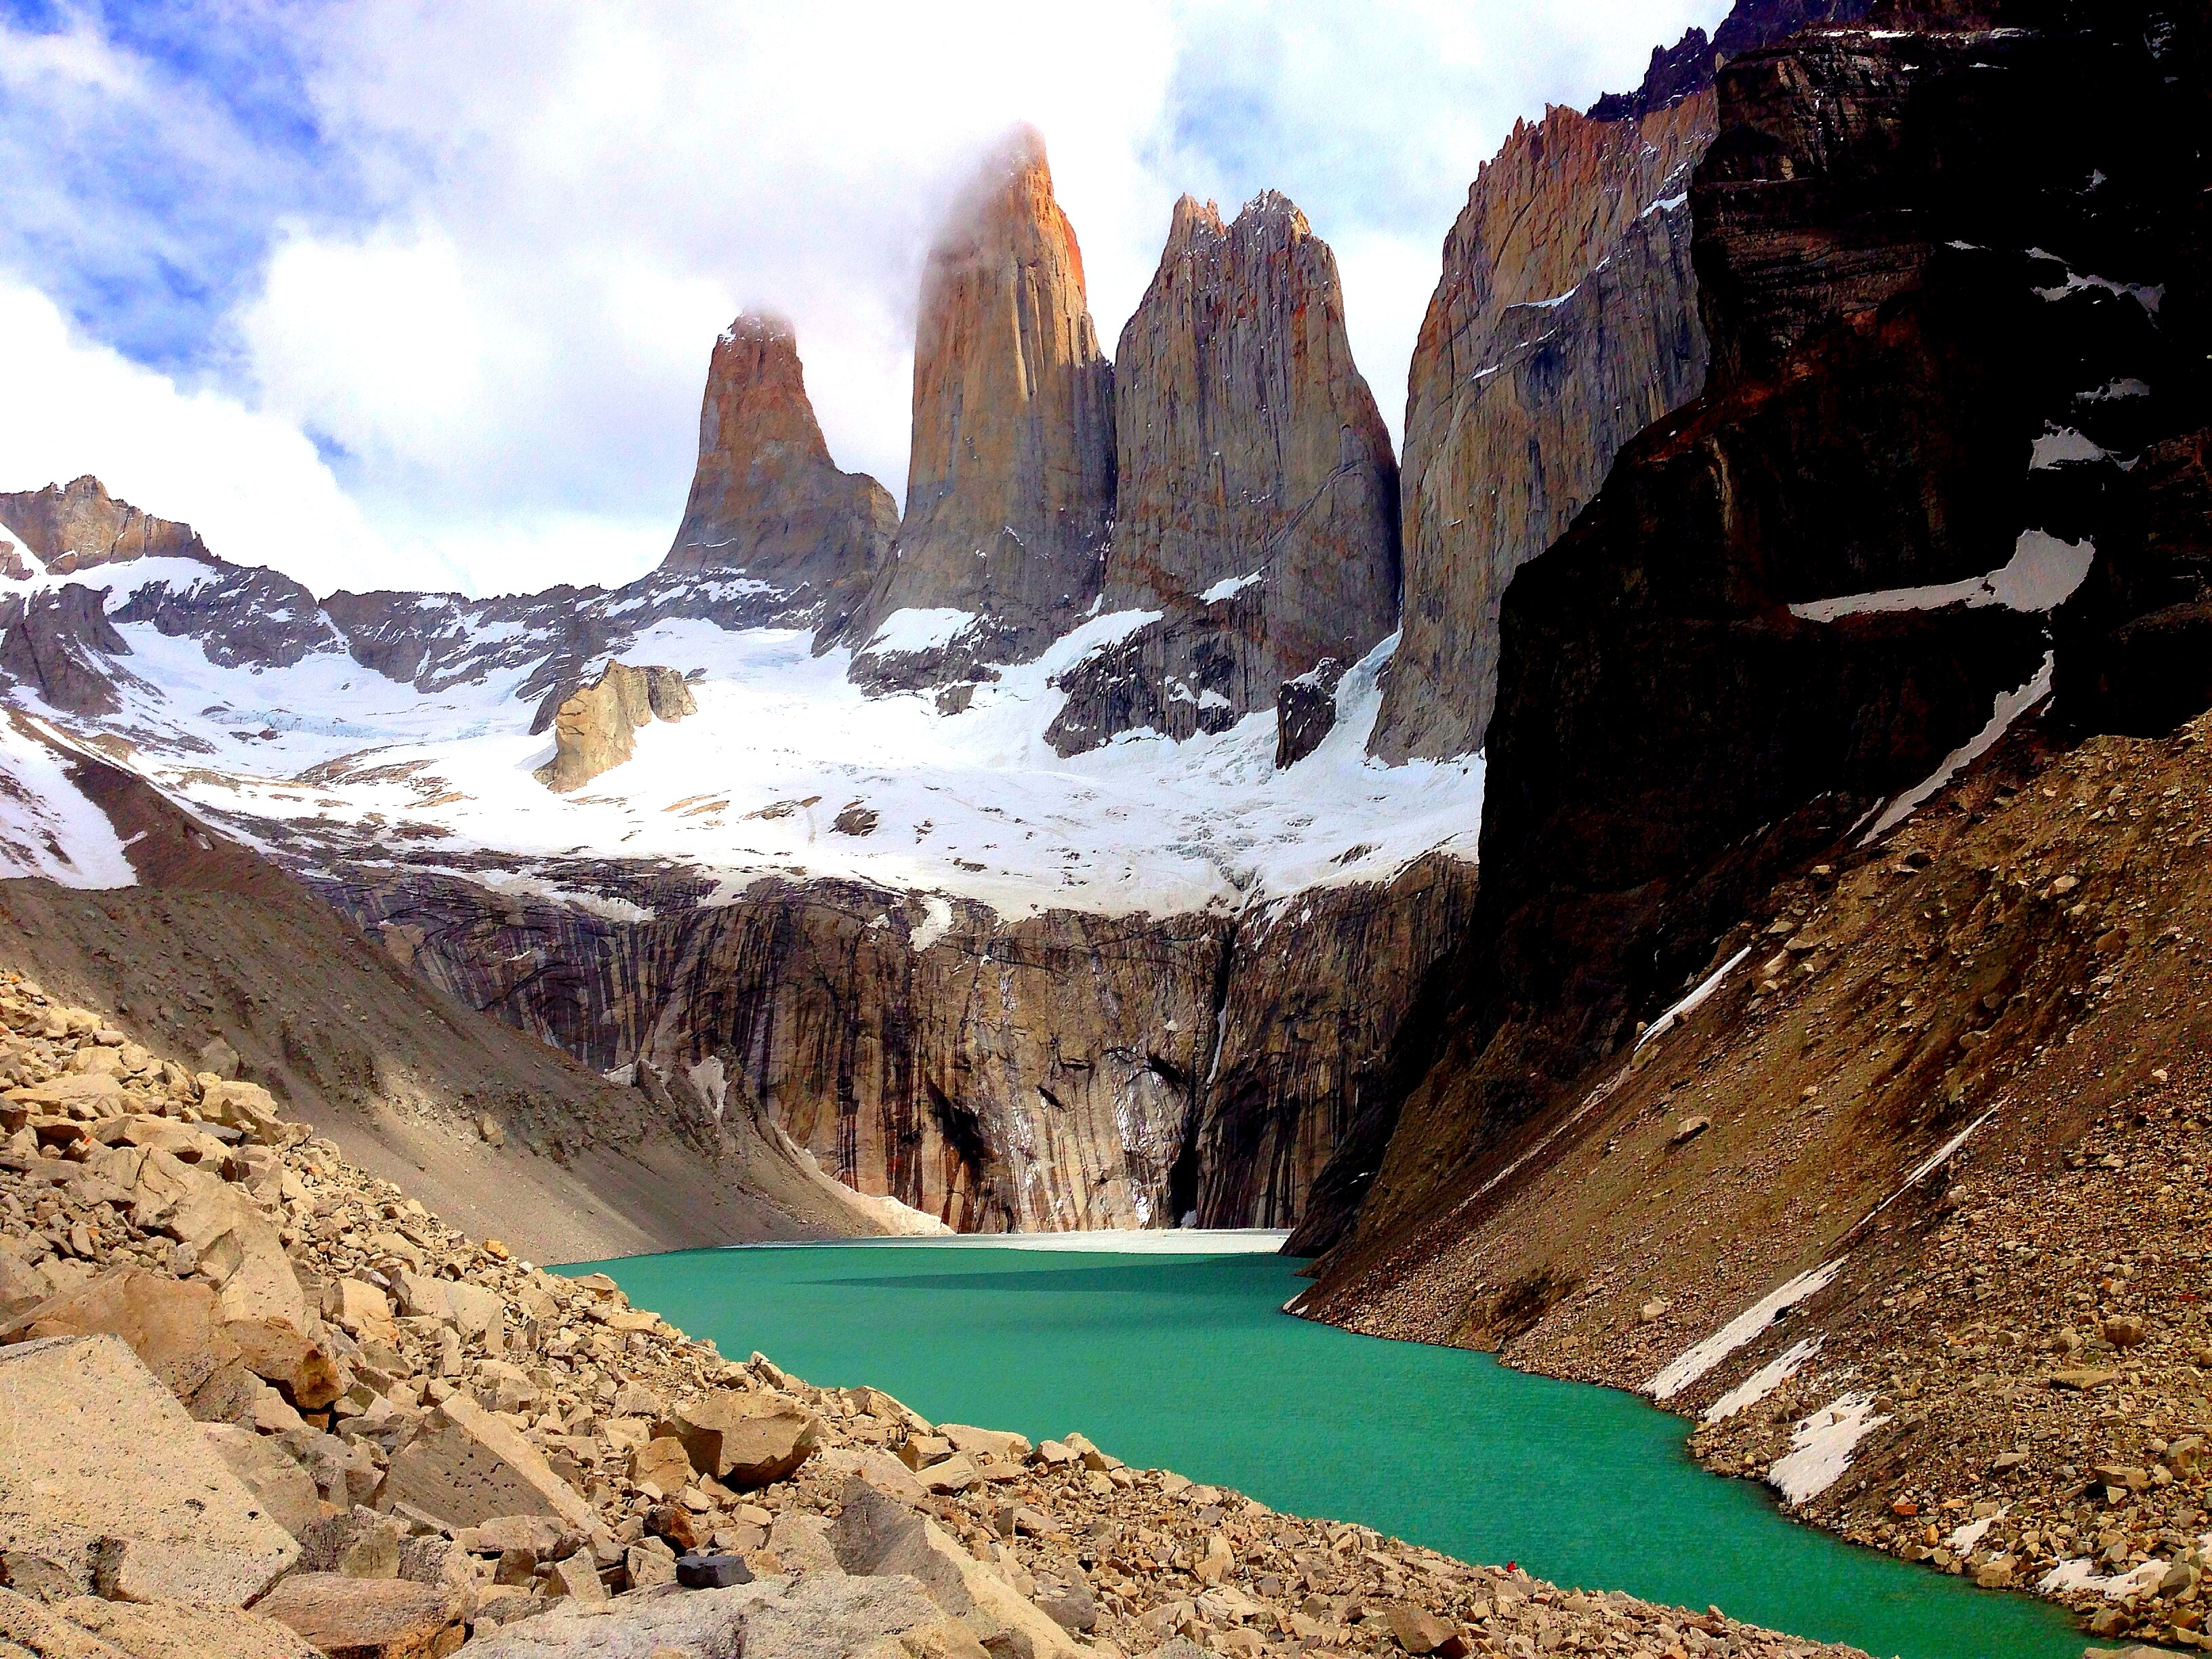 Hiking Torres Del Paine in Chilean Patagonia